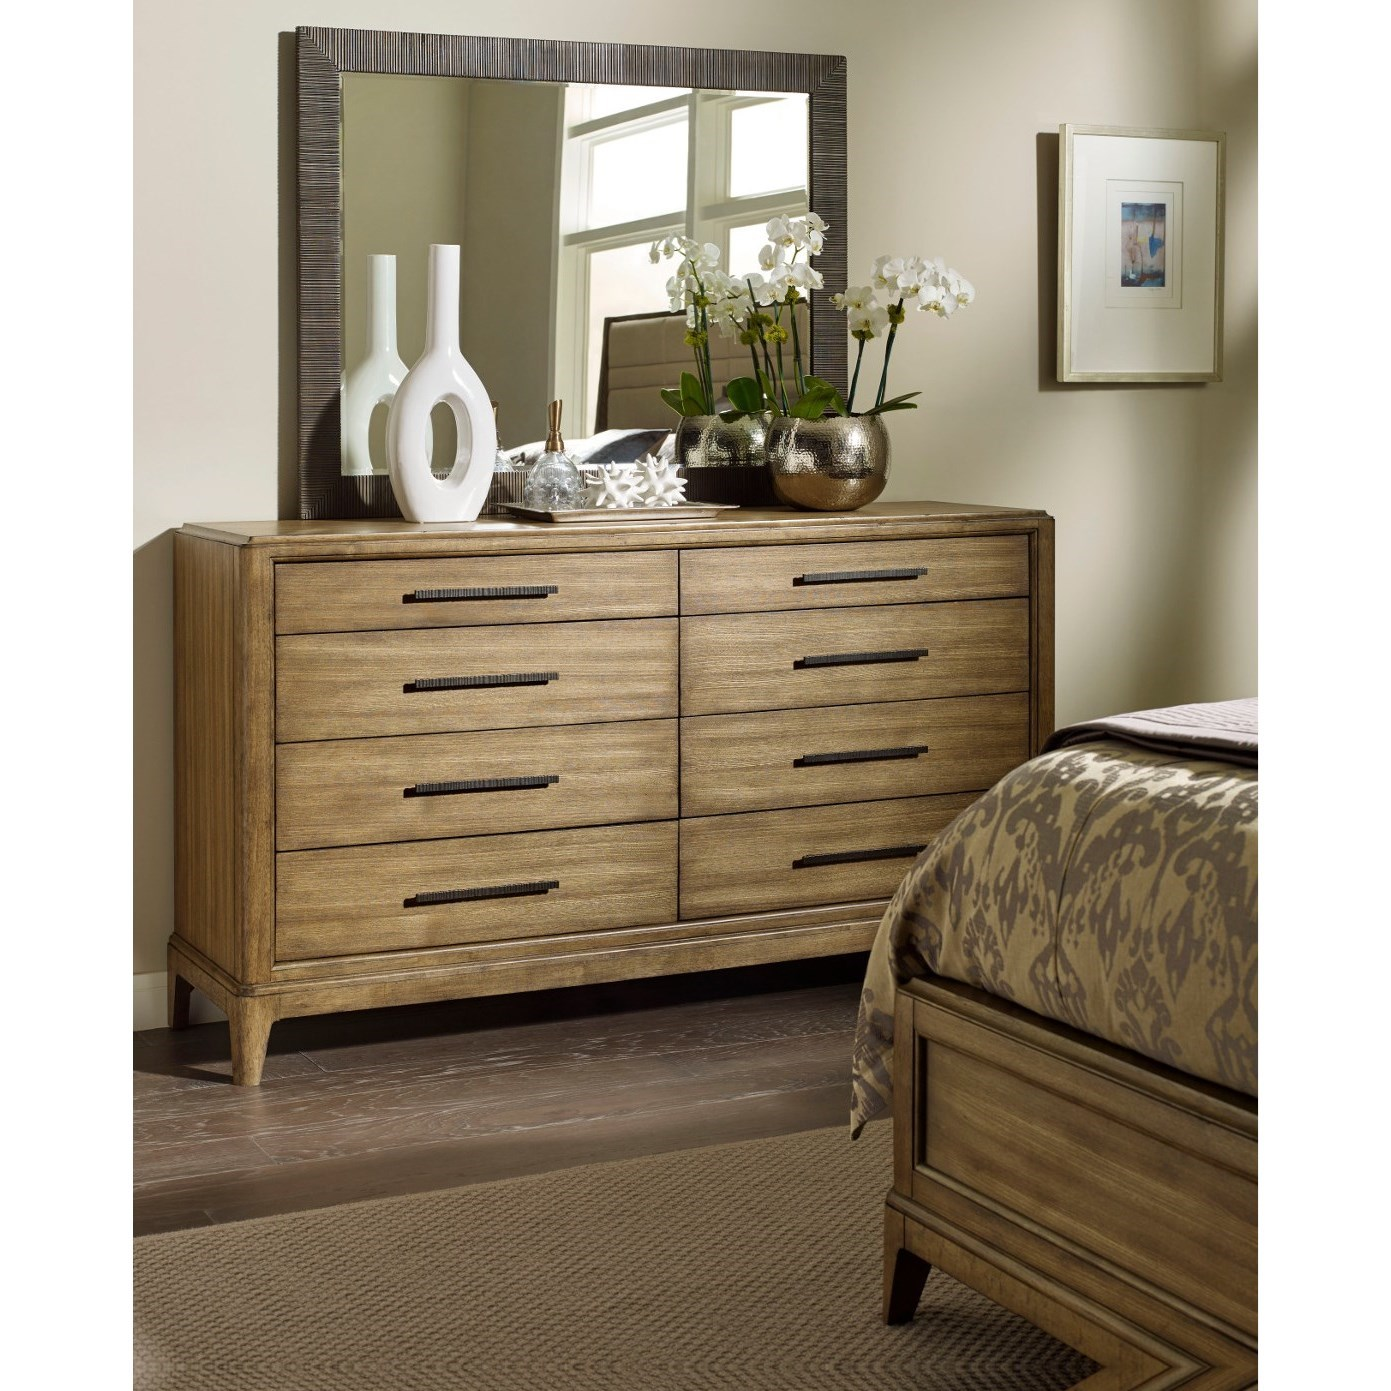 American Drew EVOKE  Dresser and Landscape Mirror - Item Number: 509-130+030